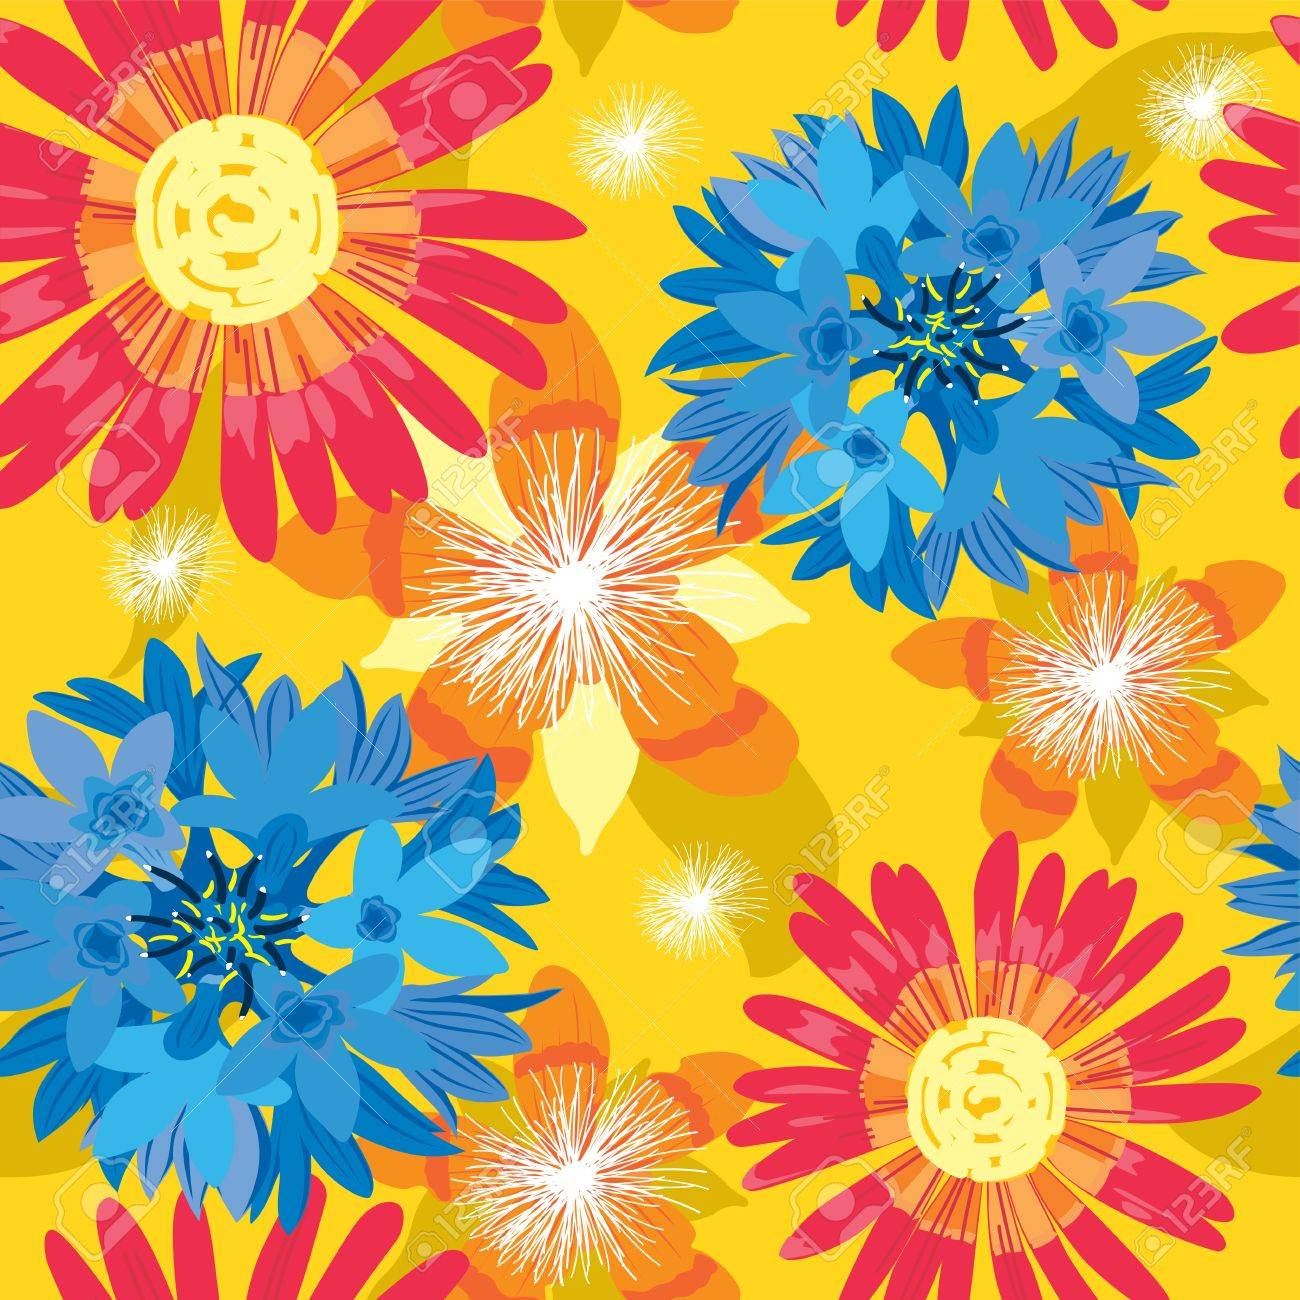 Seamless flower, summer background - floral garden, wrapping, seamless pattern, illustration - 14410192